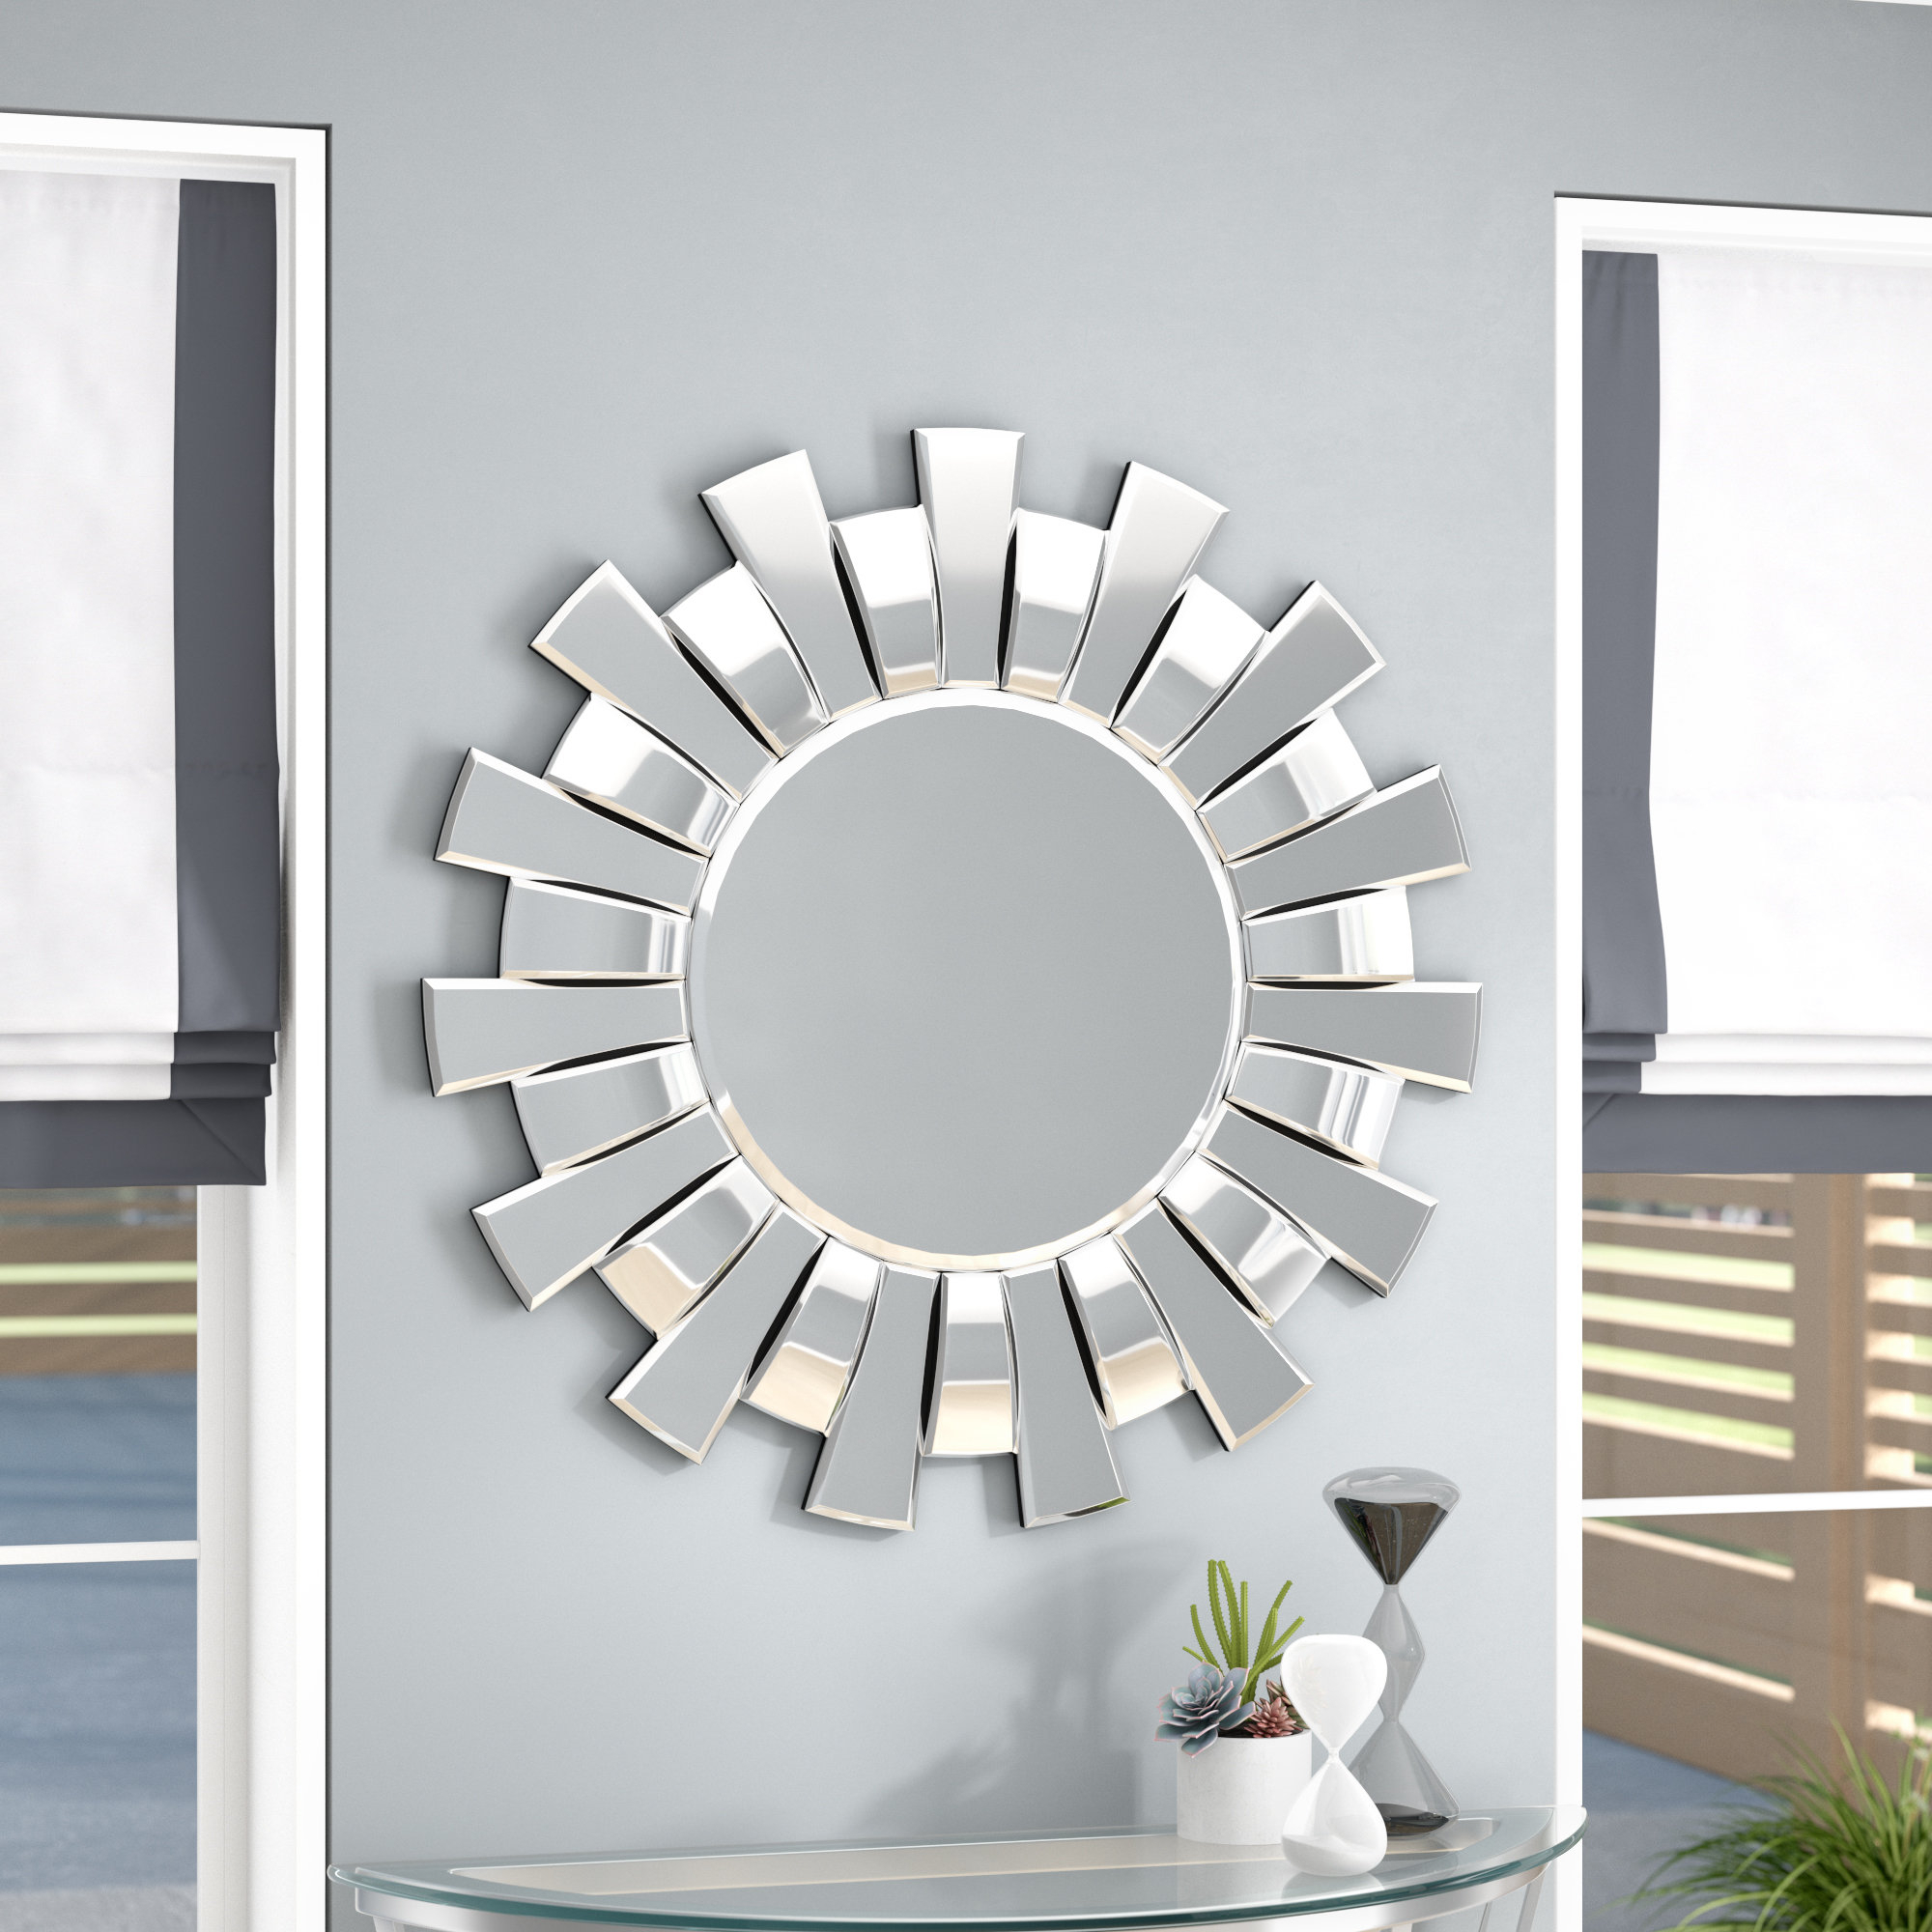 Details About Orren Ellis Sun Burst Circular Glam Beveled Wall Mirror With Favorite Sun Wall Mirrors (View 3 of 20)